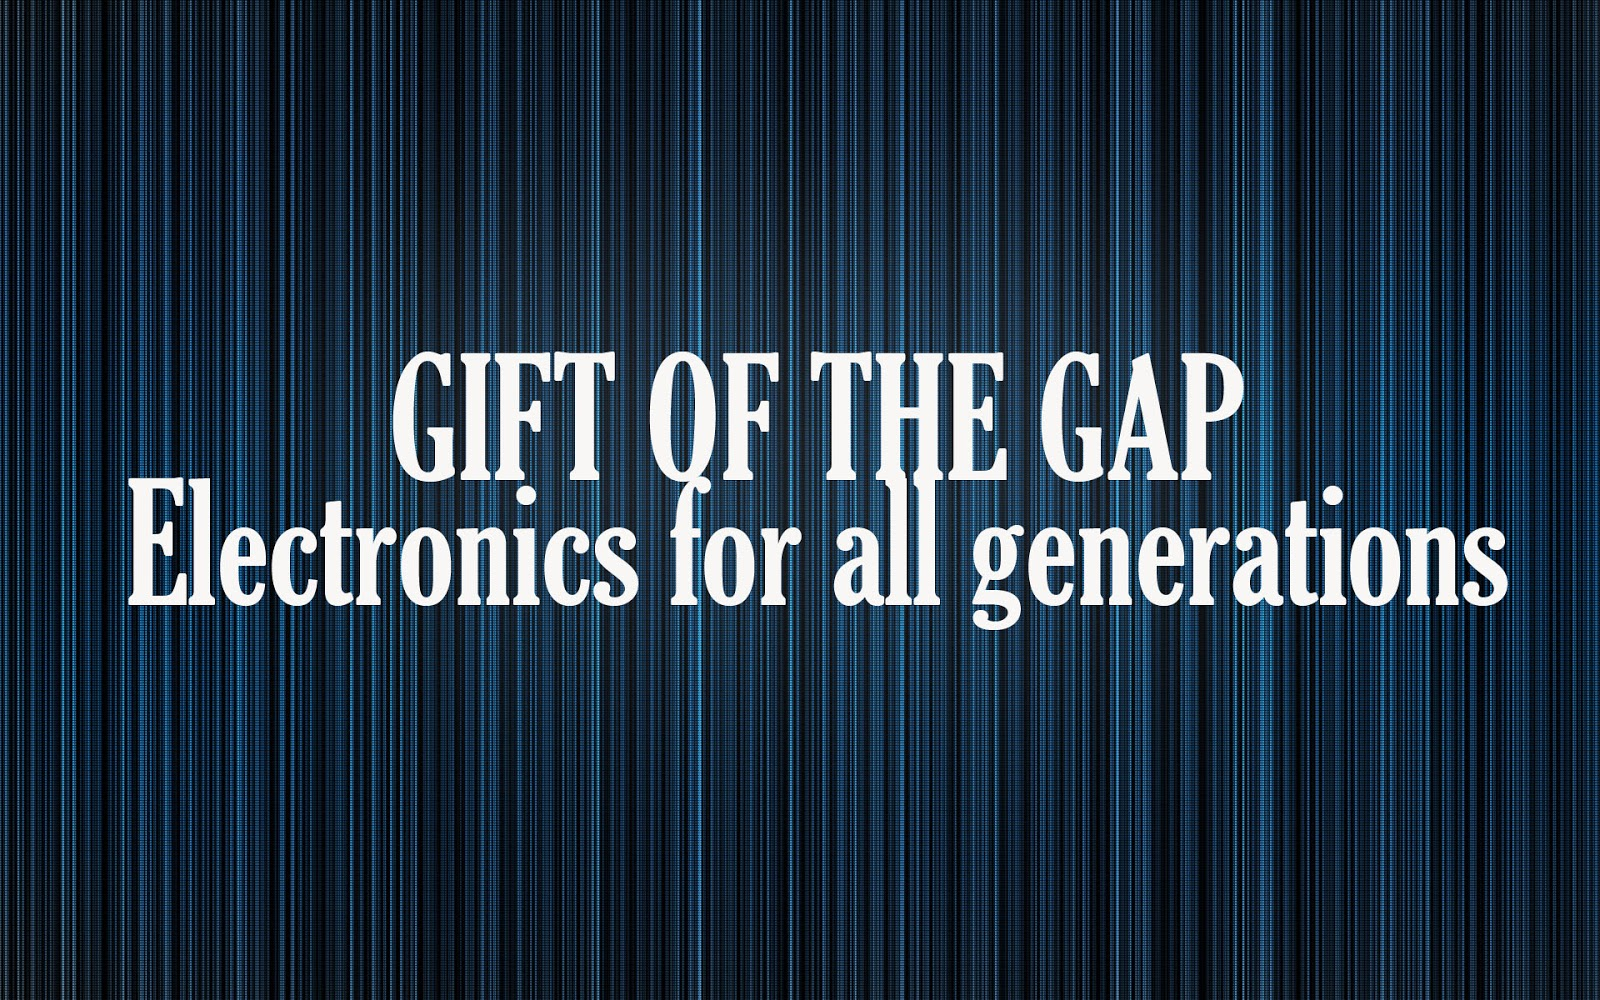 GIFT OF THE GAP Electronics for all generations